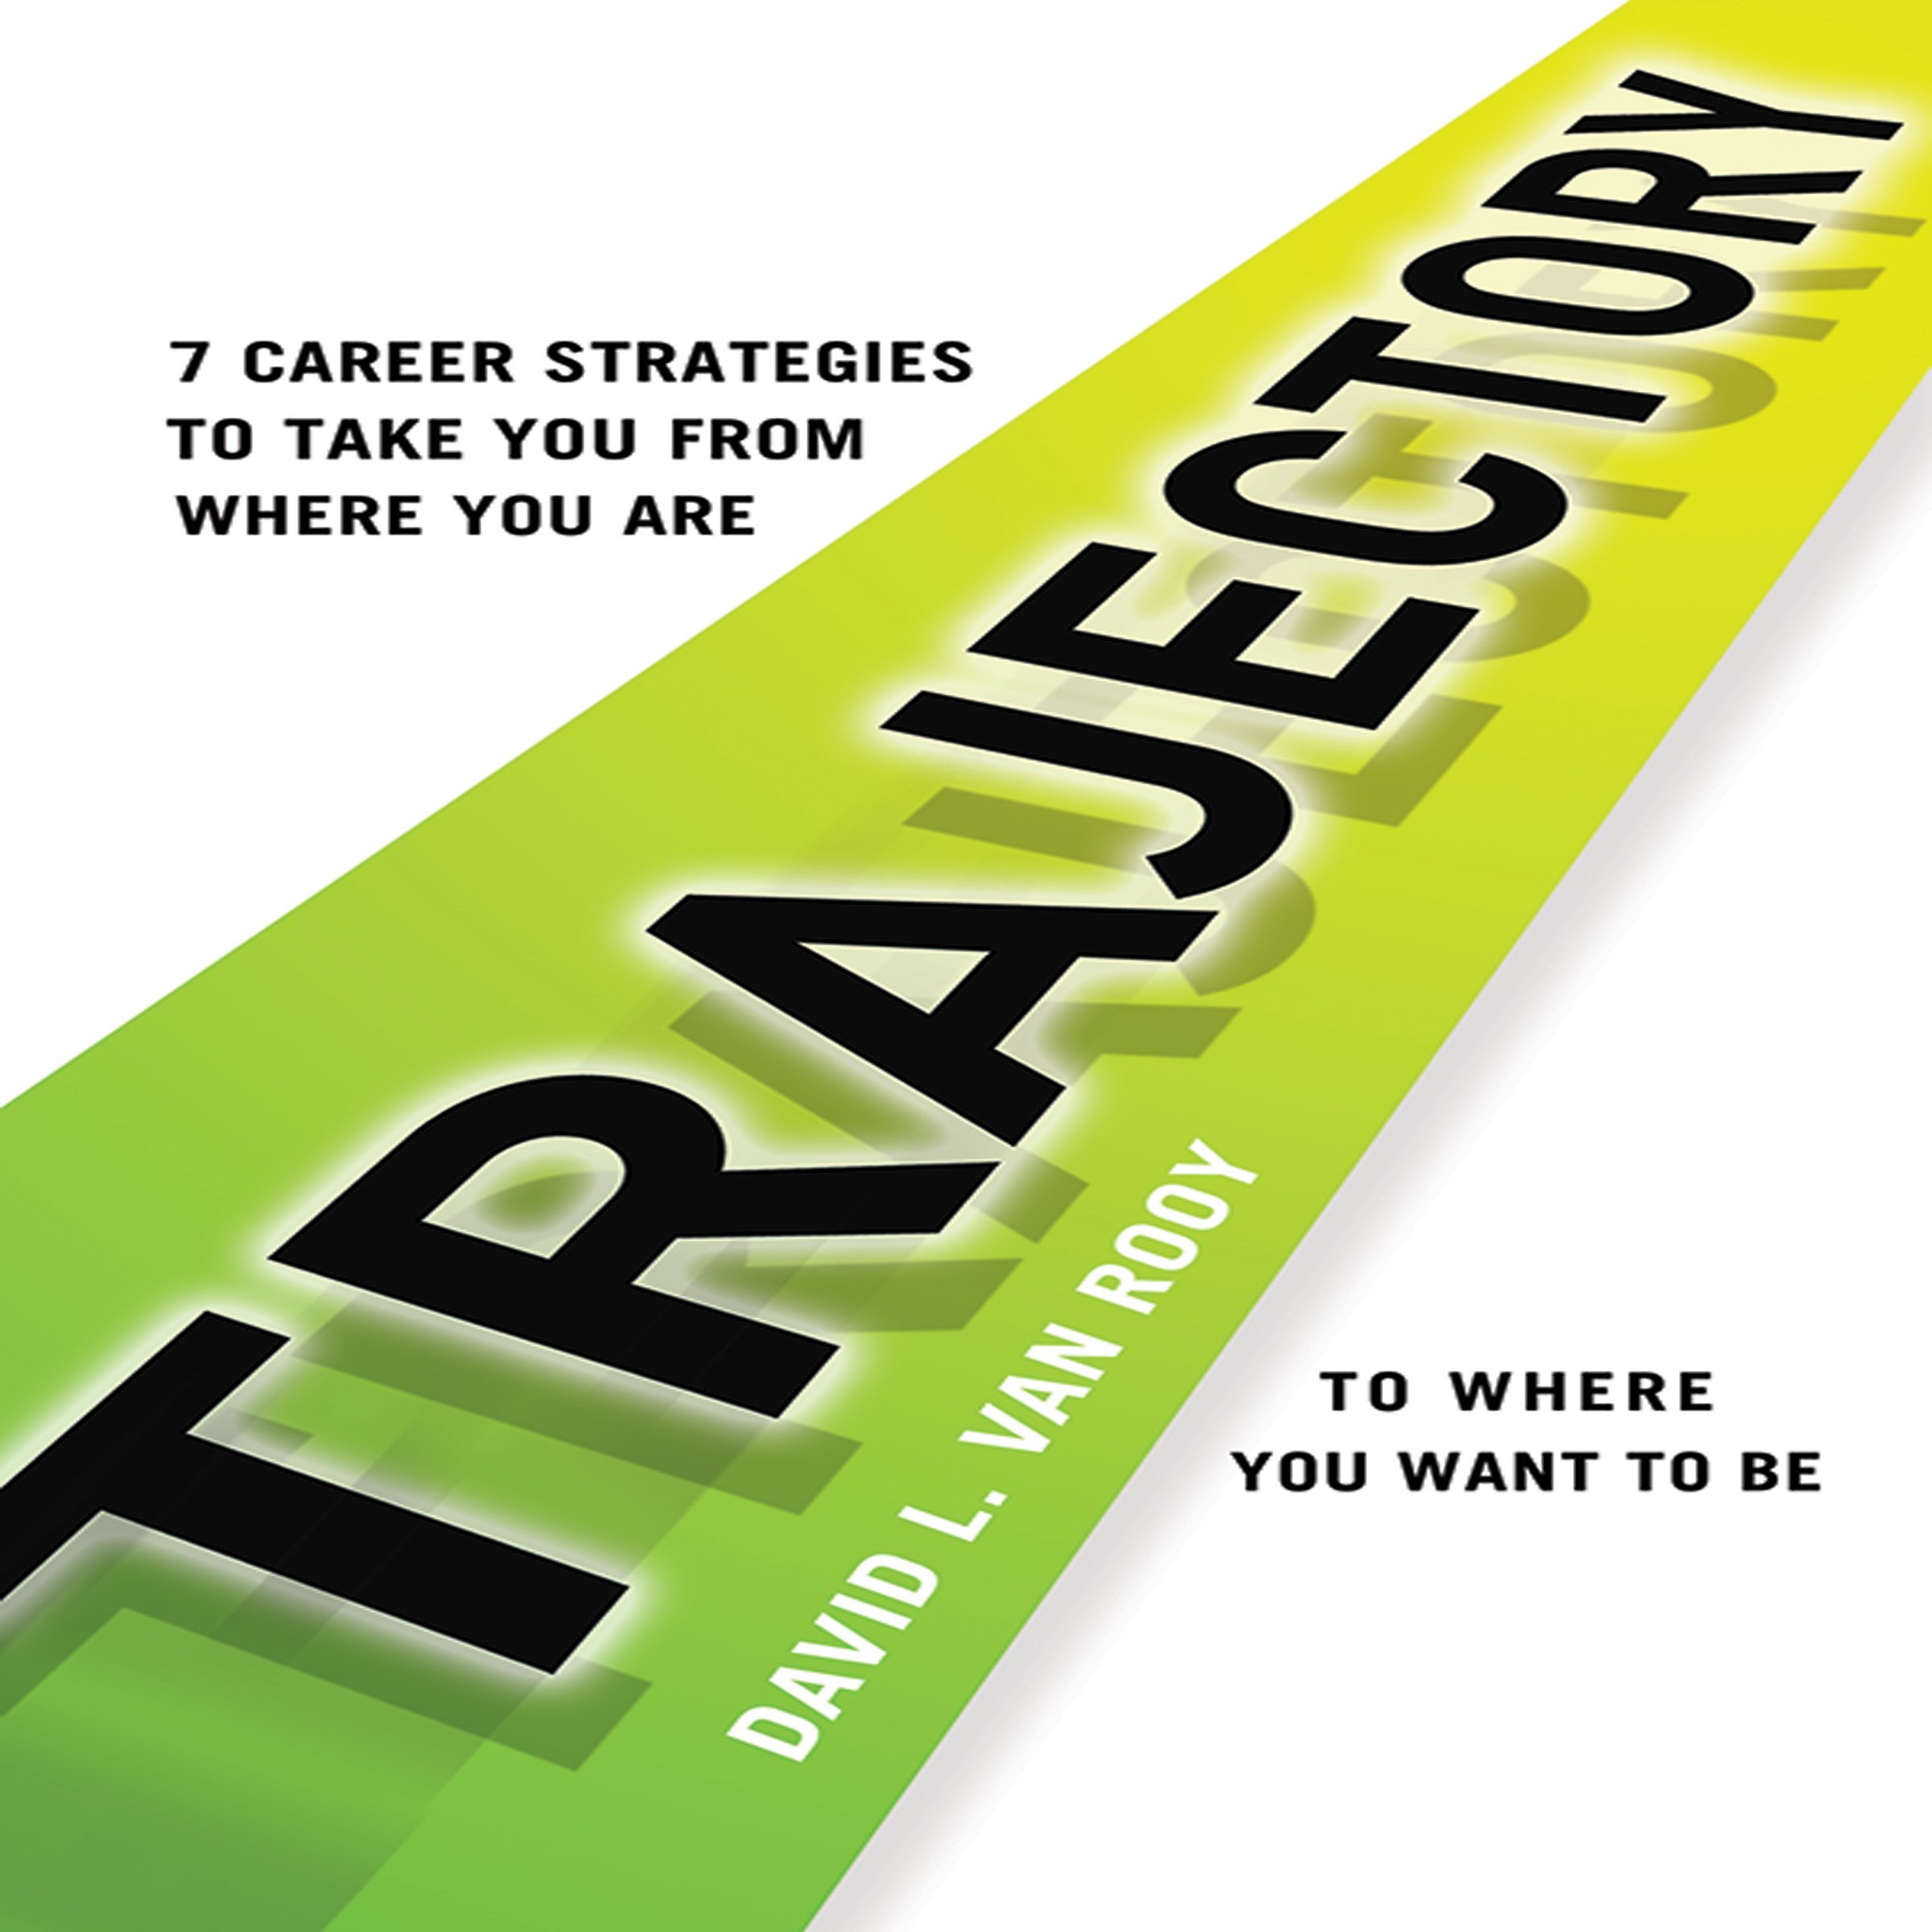 Trajectory: 7 Career Strategies to Take You from Where You Are to Where You Want to Be